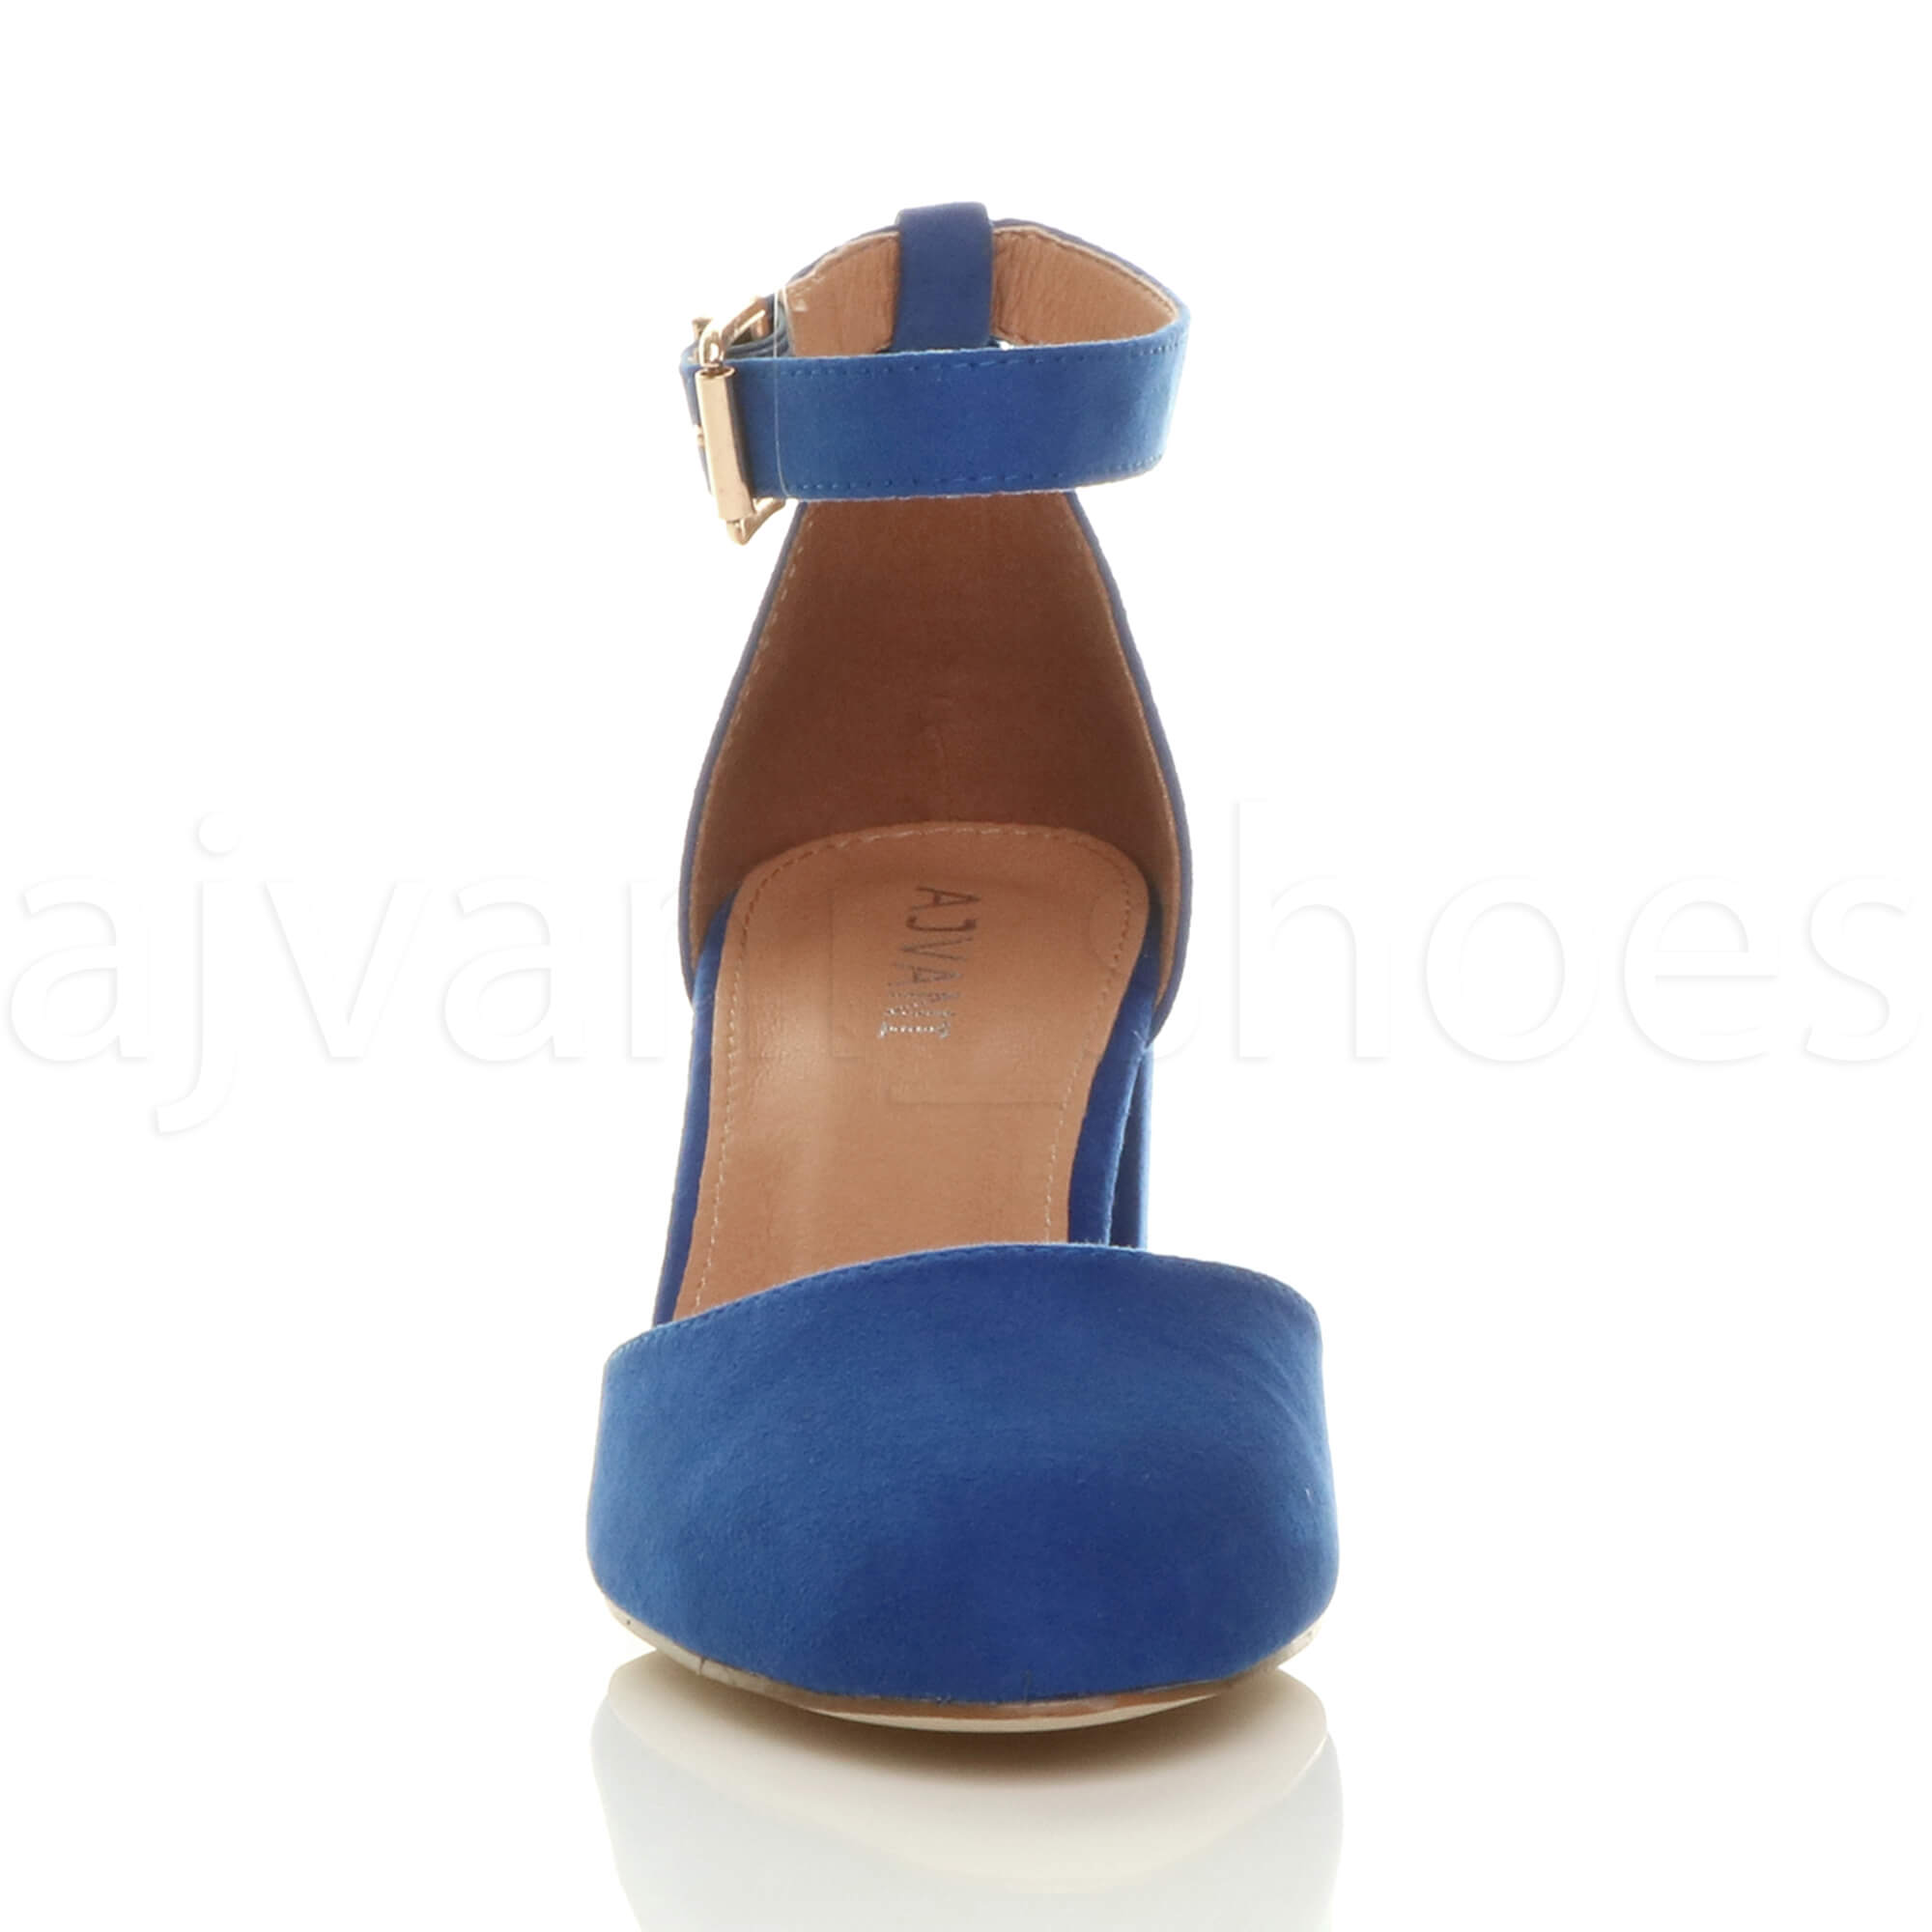 WOMENS-LADIES-LOW-MID-BLOCK-HEEL-ANKLE-STRAP-MARY-JANE-COURT-SHOES-SANDALS-SIZE thumbnail 31